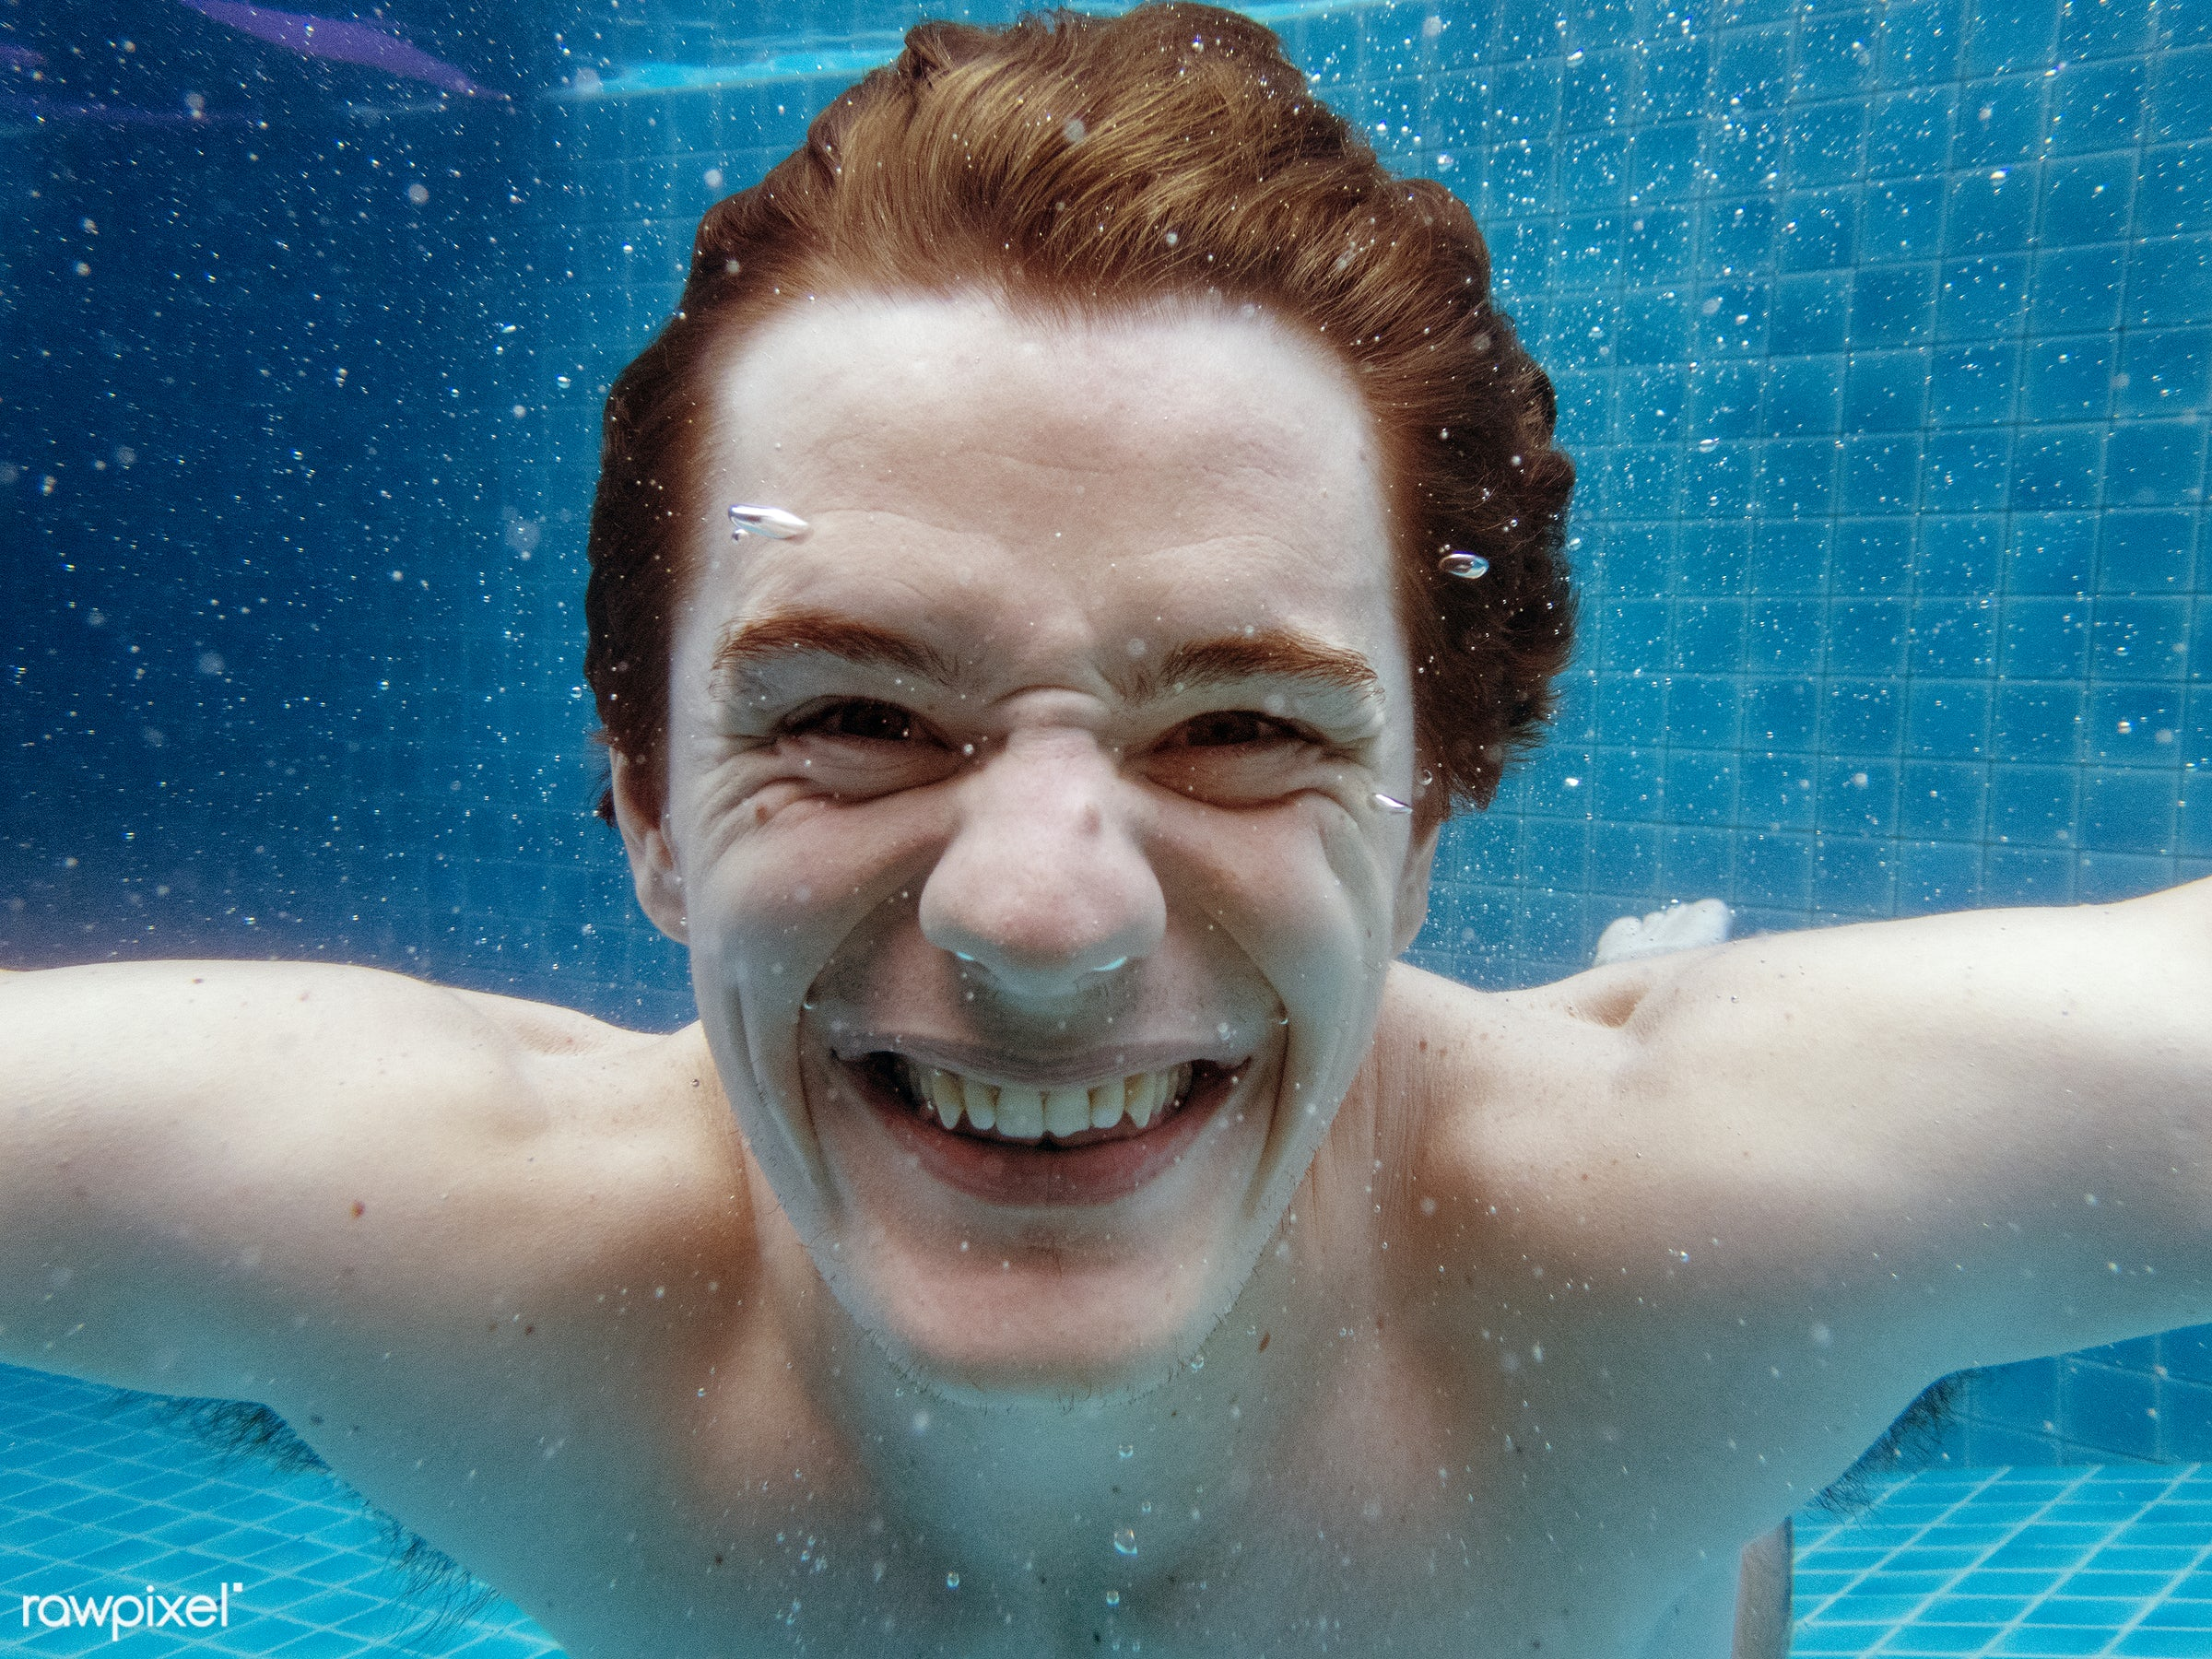 A caucasian man smiling underwater - bubbles, cheerful, chill, closeup, fun, happiness, holiday, leisure, man, outdoors,...